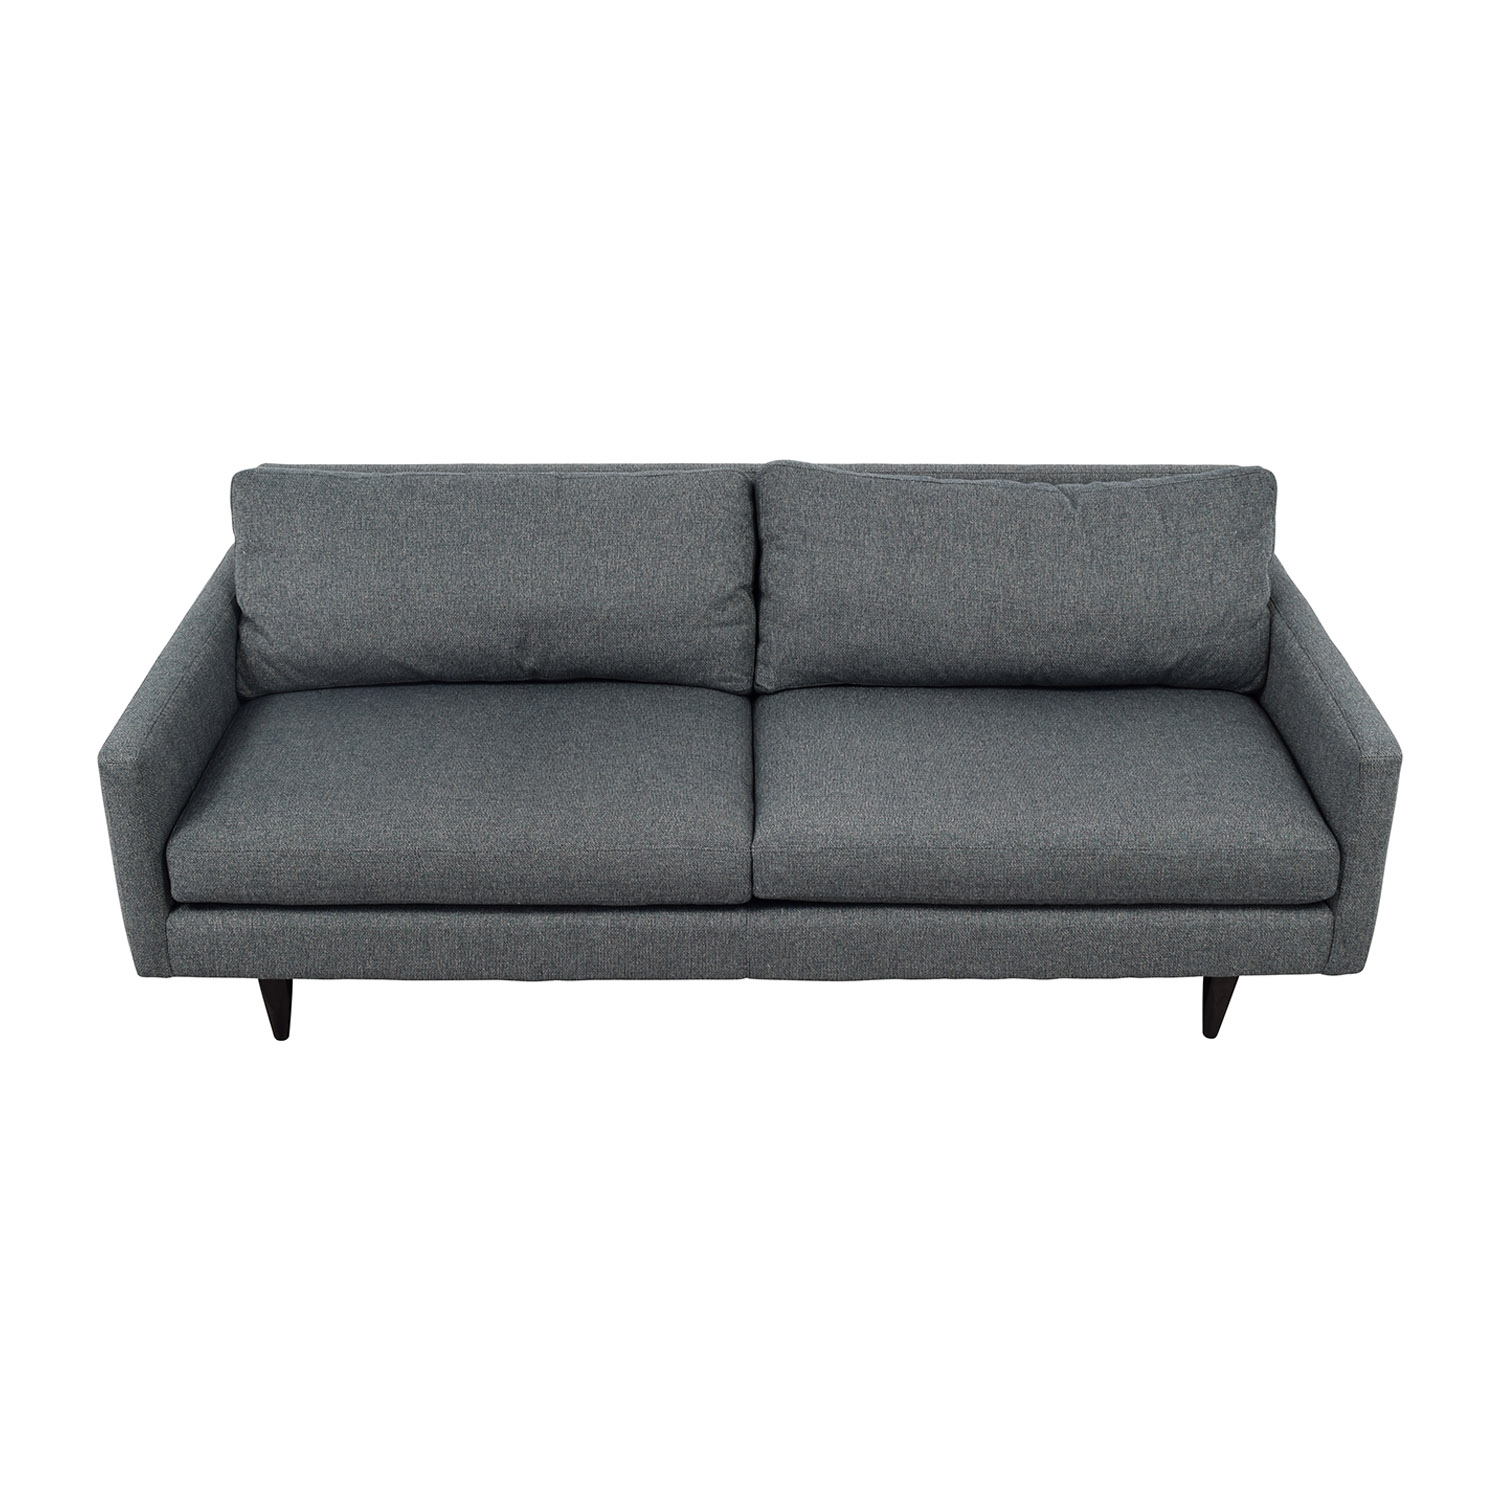 Room & Board Room & Board Blue Grey Two-Cushion Sofa on sale